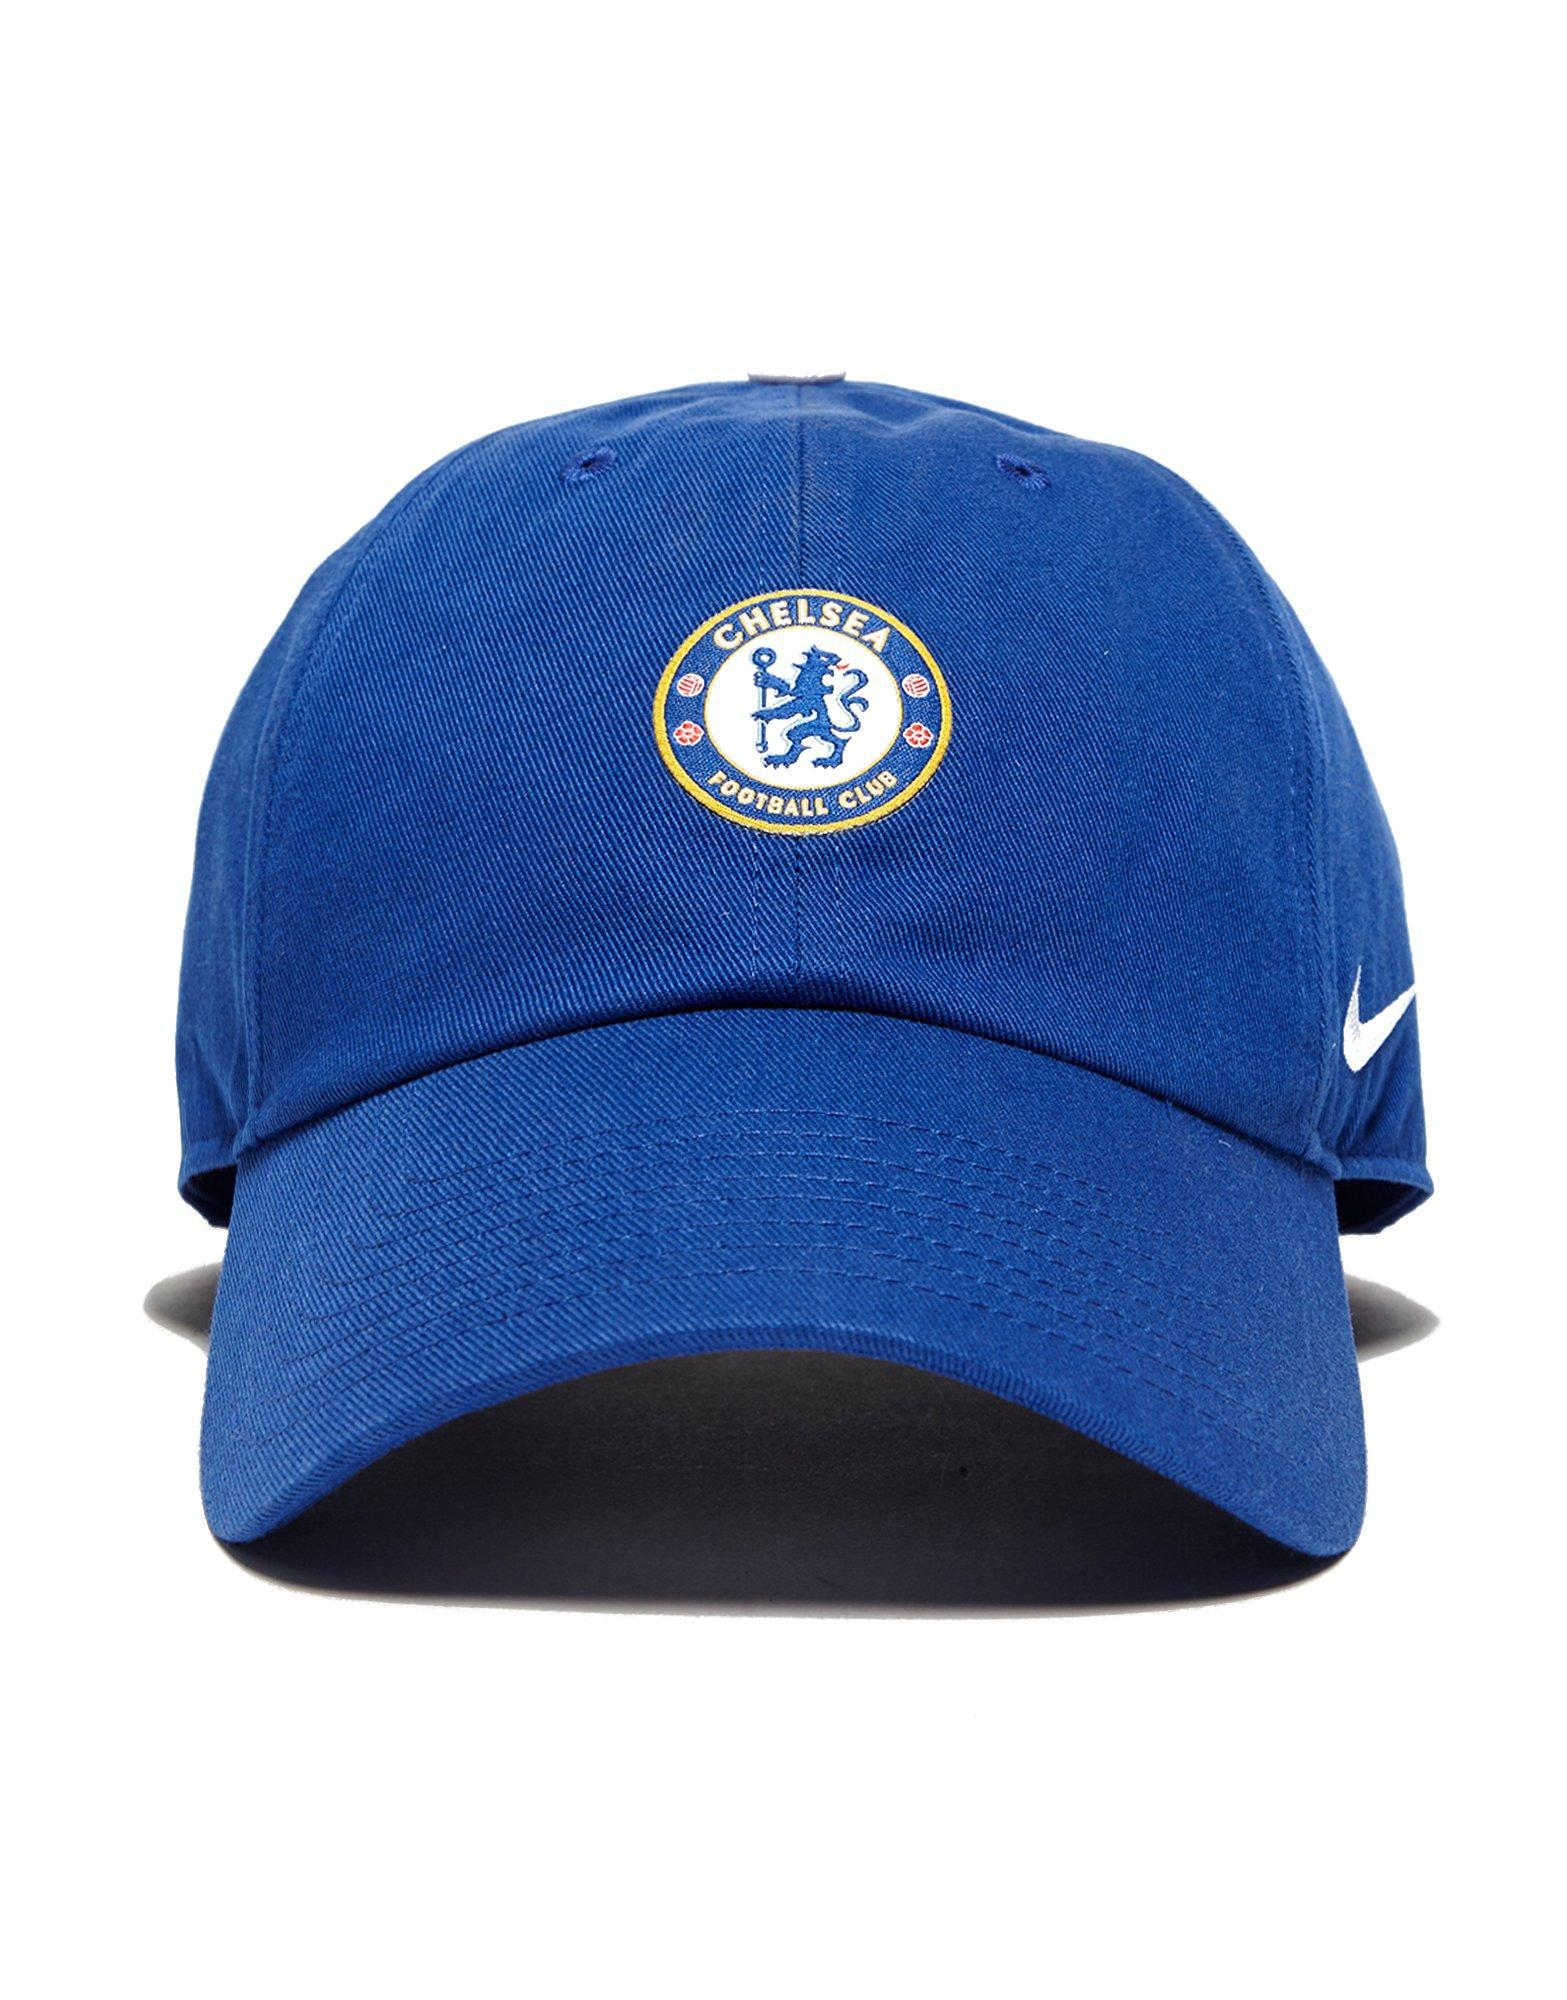 Lyst - Nike Chelsea Fc H86 Cap in Blue for Men dd5e2c4f0e4